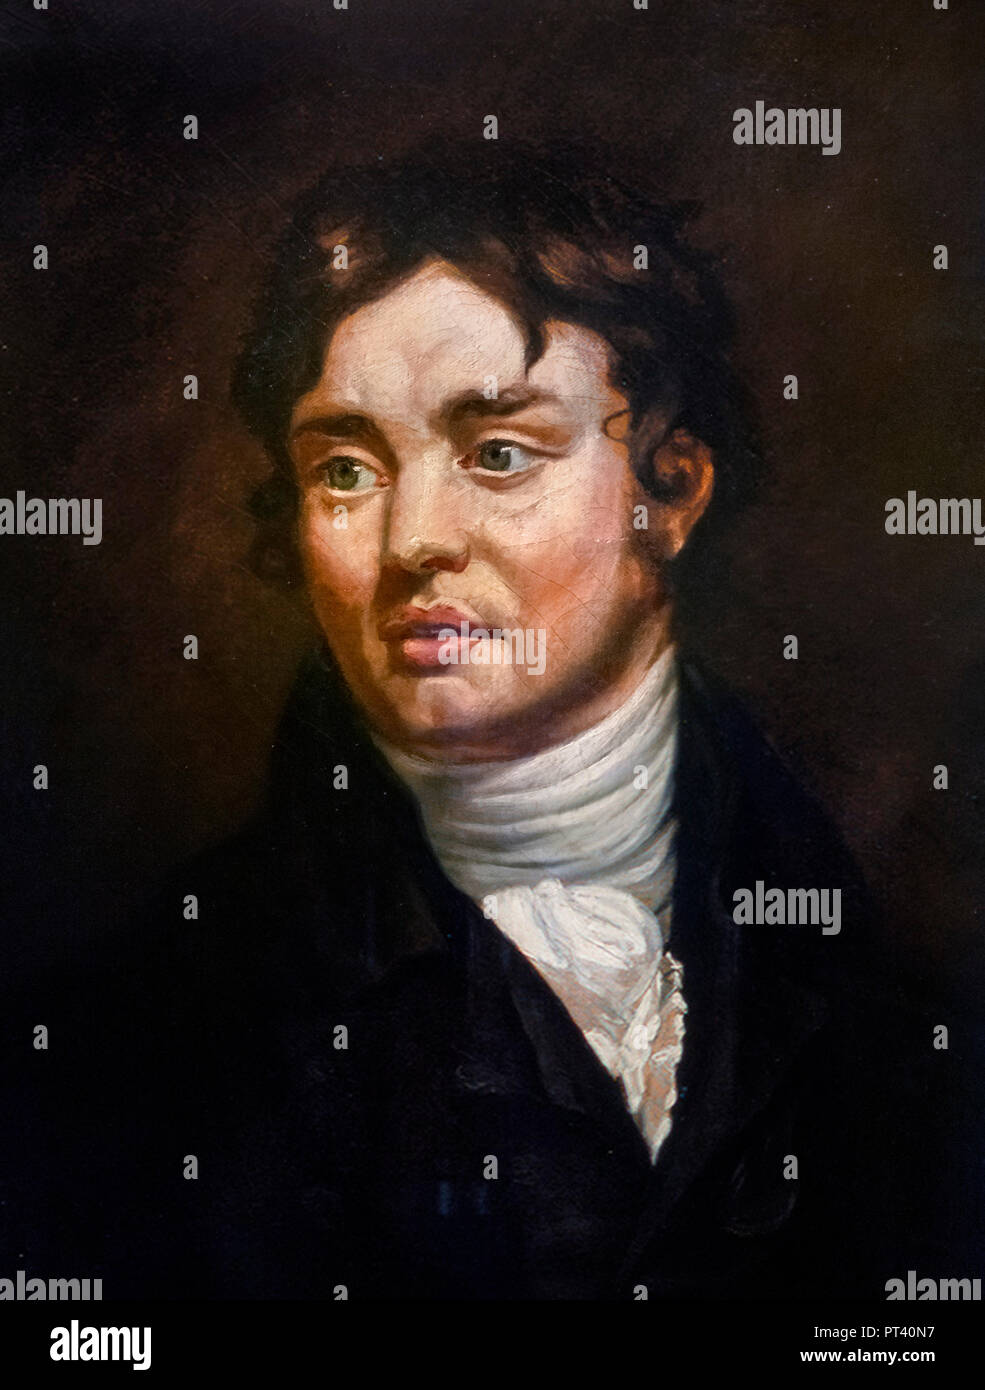 Samuel Taylor Coleridge (1772-1834) portrait as a young man after James Northcote, oil on canves, 1804. - Stock Image